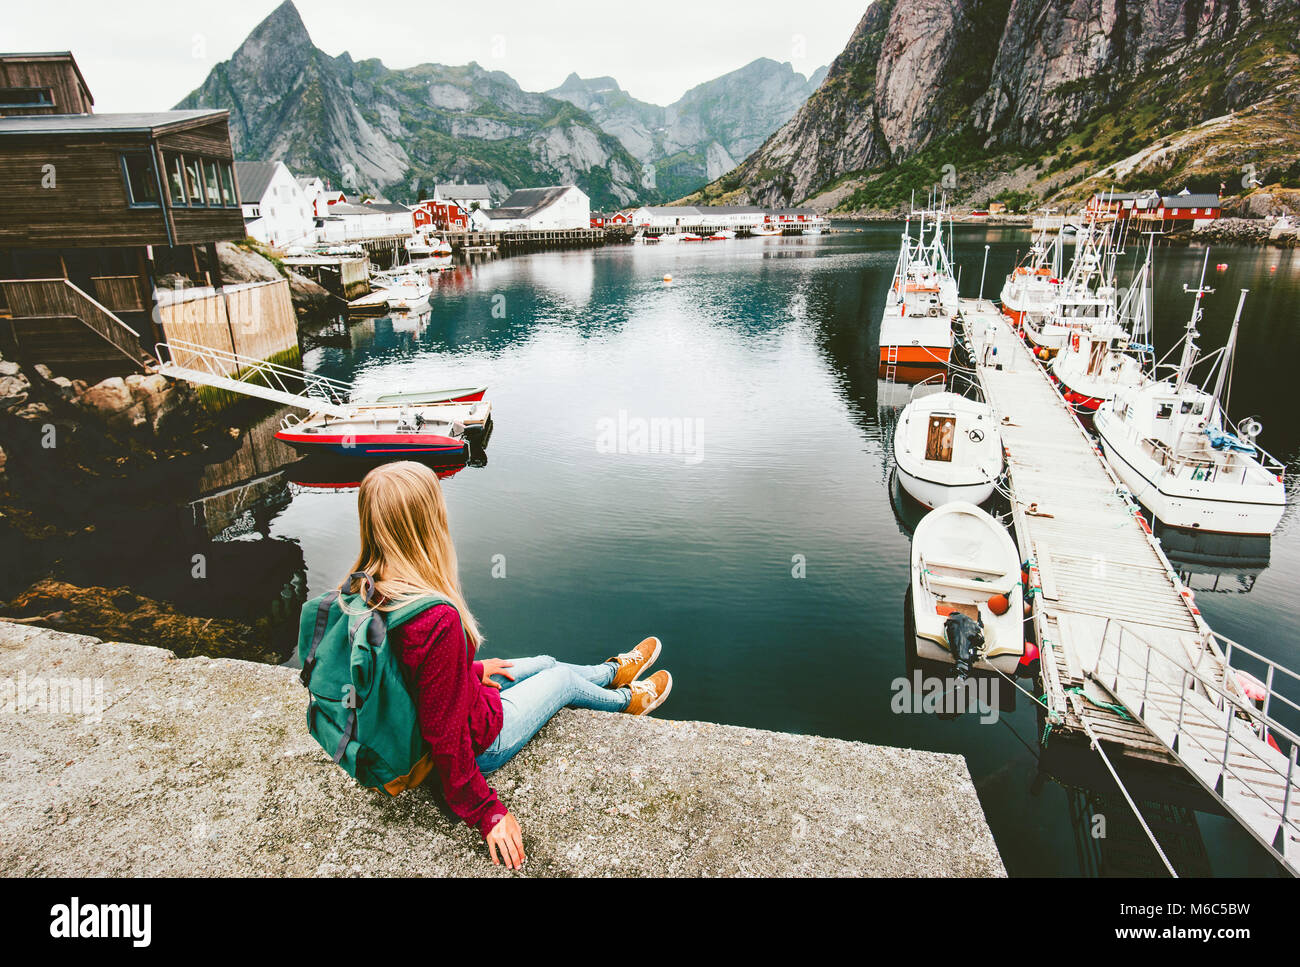 Young woman tourist relaxing on bridge over fjord in Lofoten islands of Norway Travel backpacking lifestyle concept Stock Photo